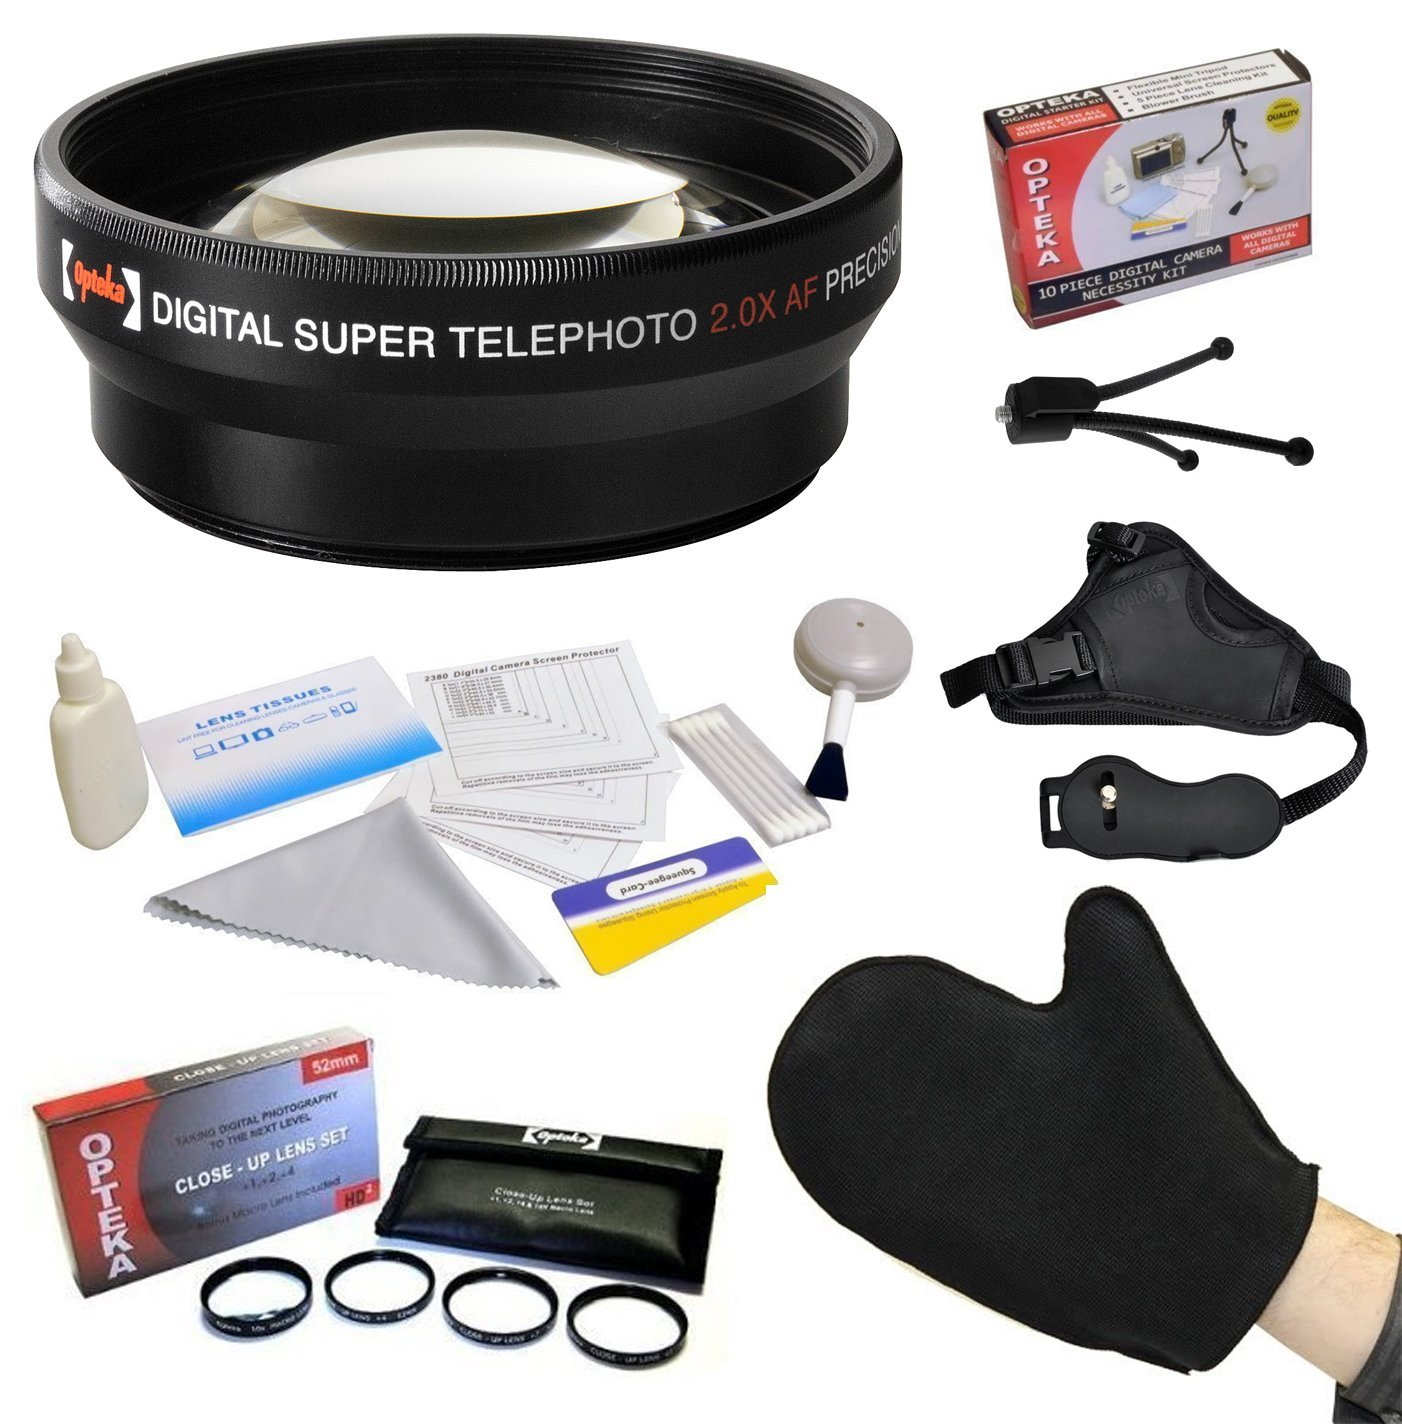 Best Value Kit for Olympus SP-550 SP-570 SP-560 UZ Digital Camera with 2x Lens   Opteka Close-Up Set with Macro Lens   Grip Strap   Microfiber LCD Photo Cleaning Glove   Tube Adapter   Cleaning Kit